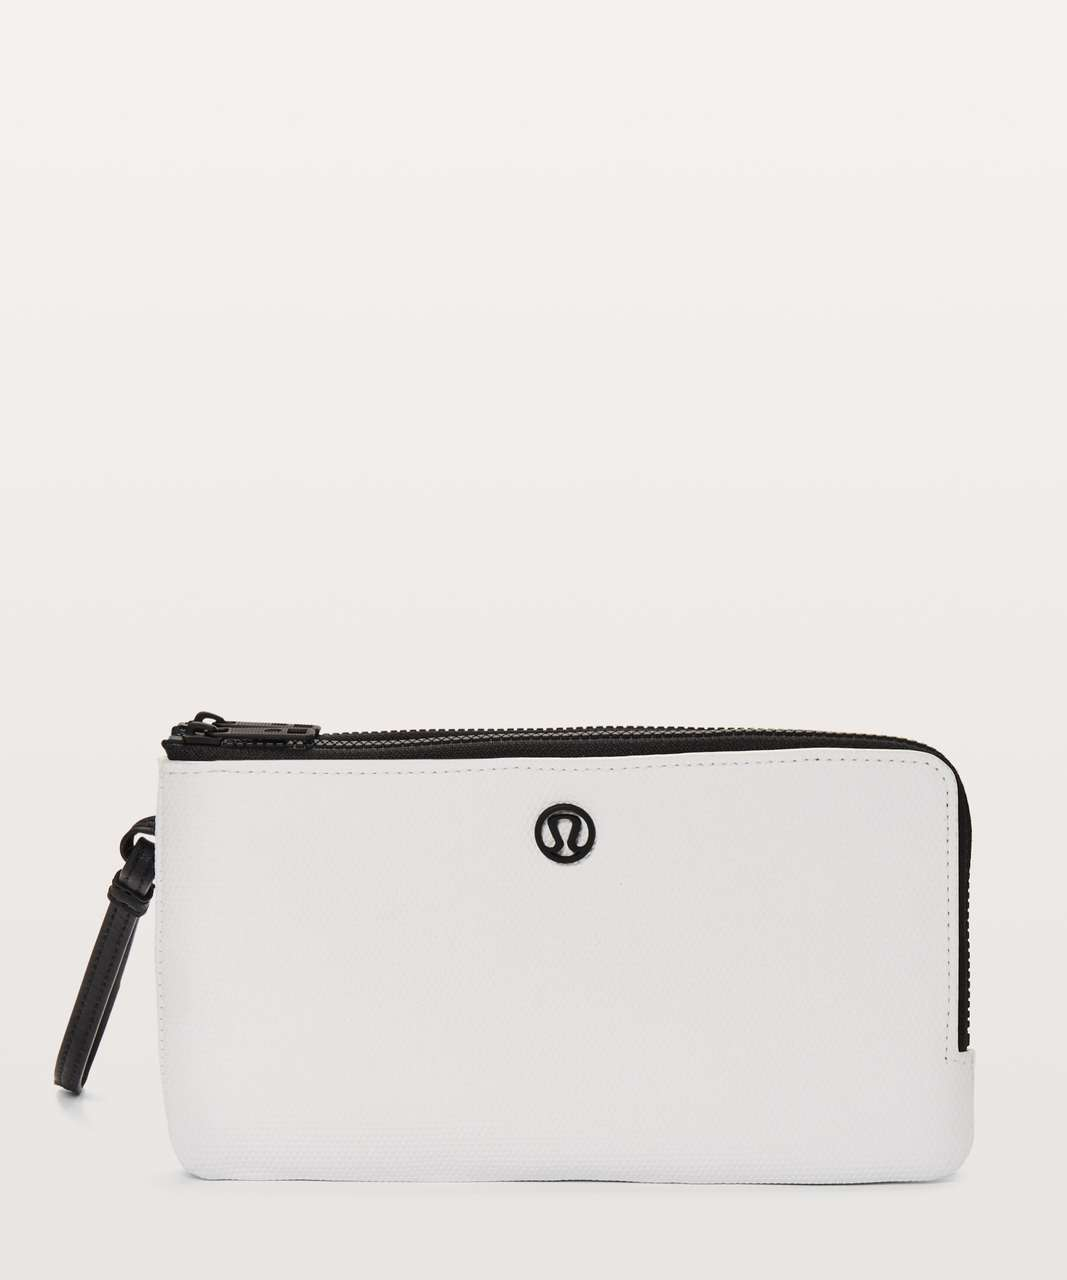 Lululemon Double Up Pouch - White